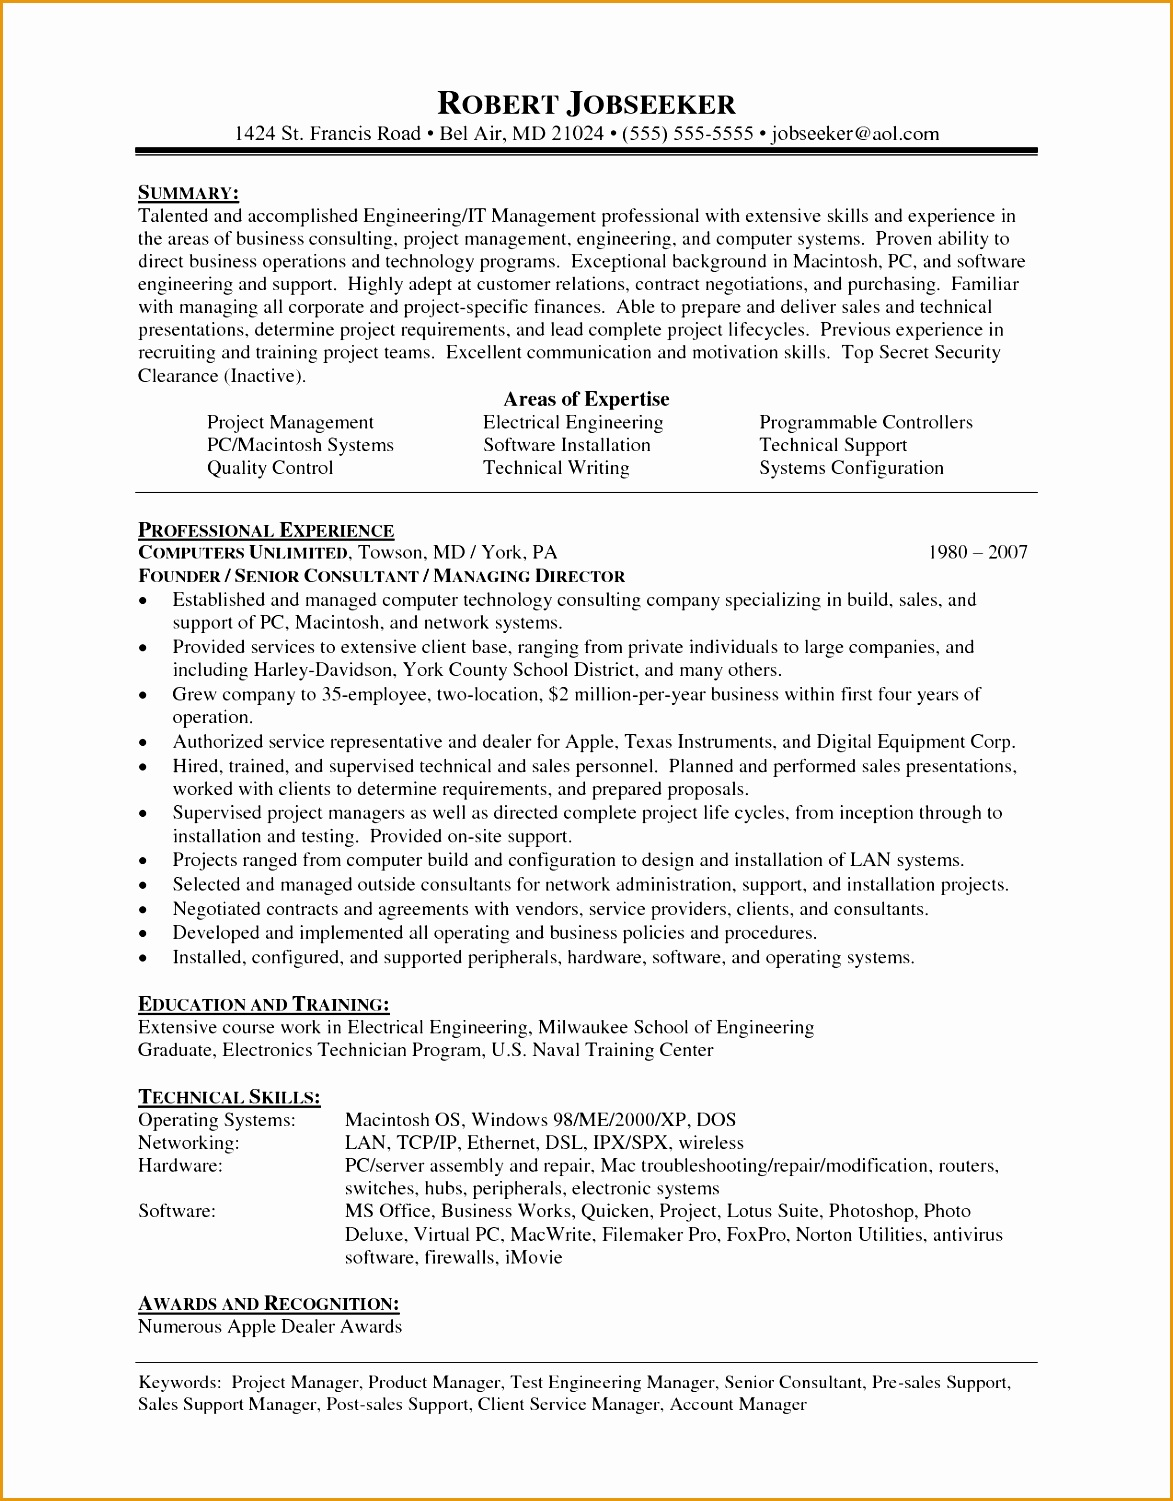 7 Recruitment Consultant Resume Sample  Free Samples  Examples  Format Resume  Curruculum Vitae